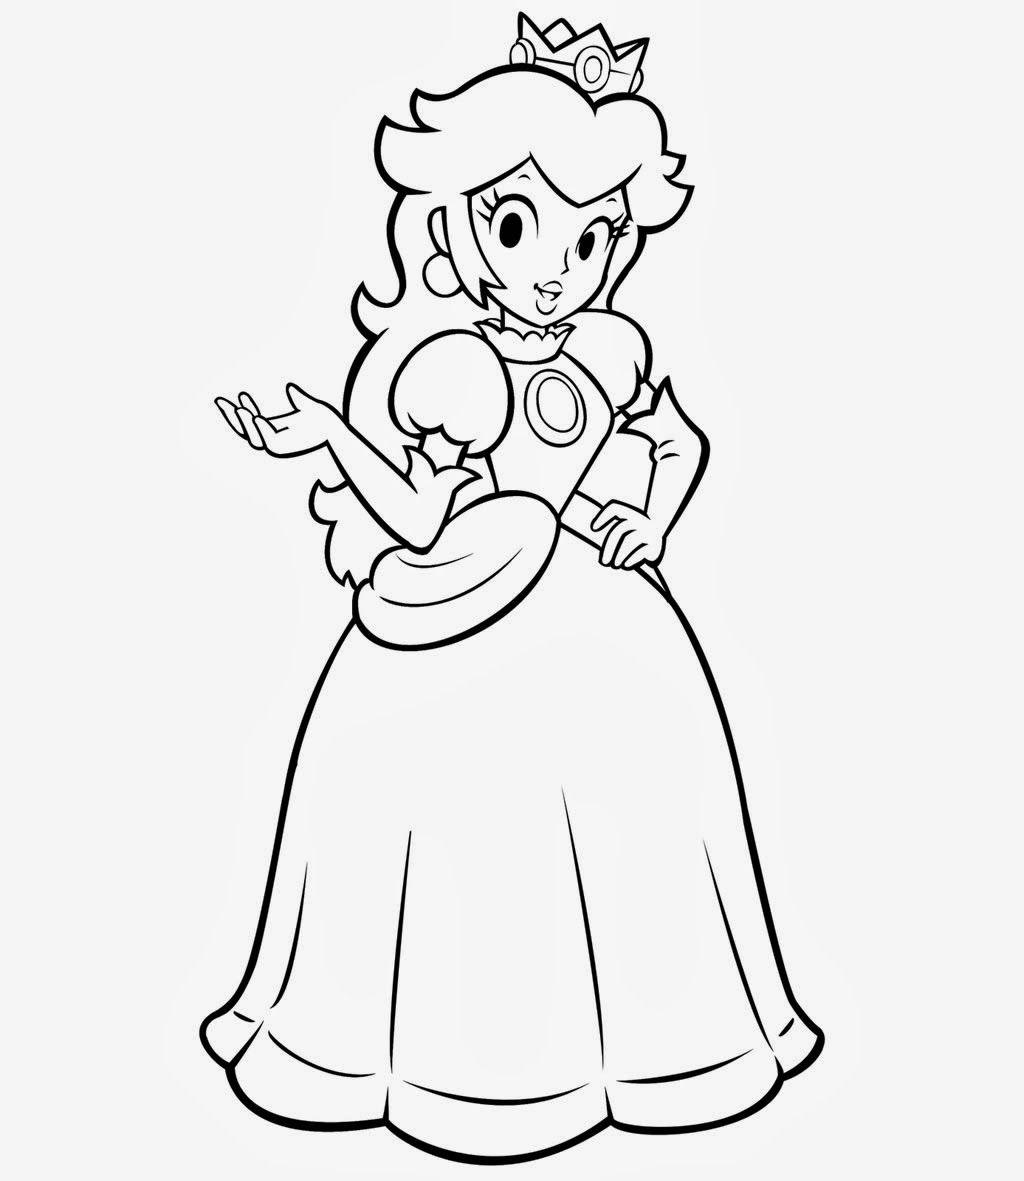 45++ Printable princess peach coloring pages ideas